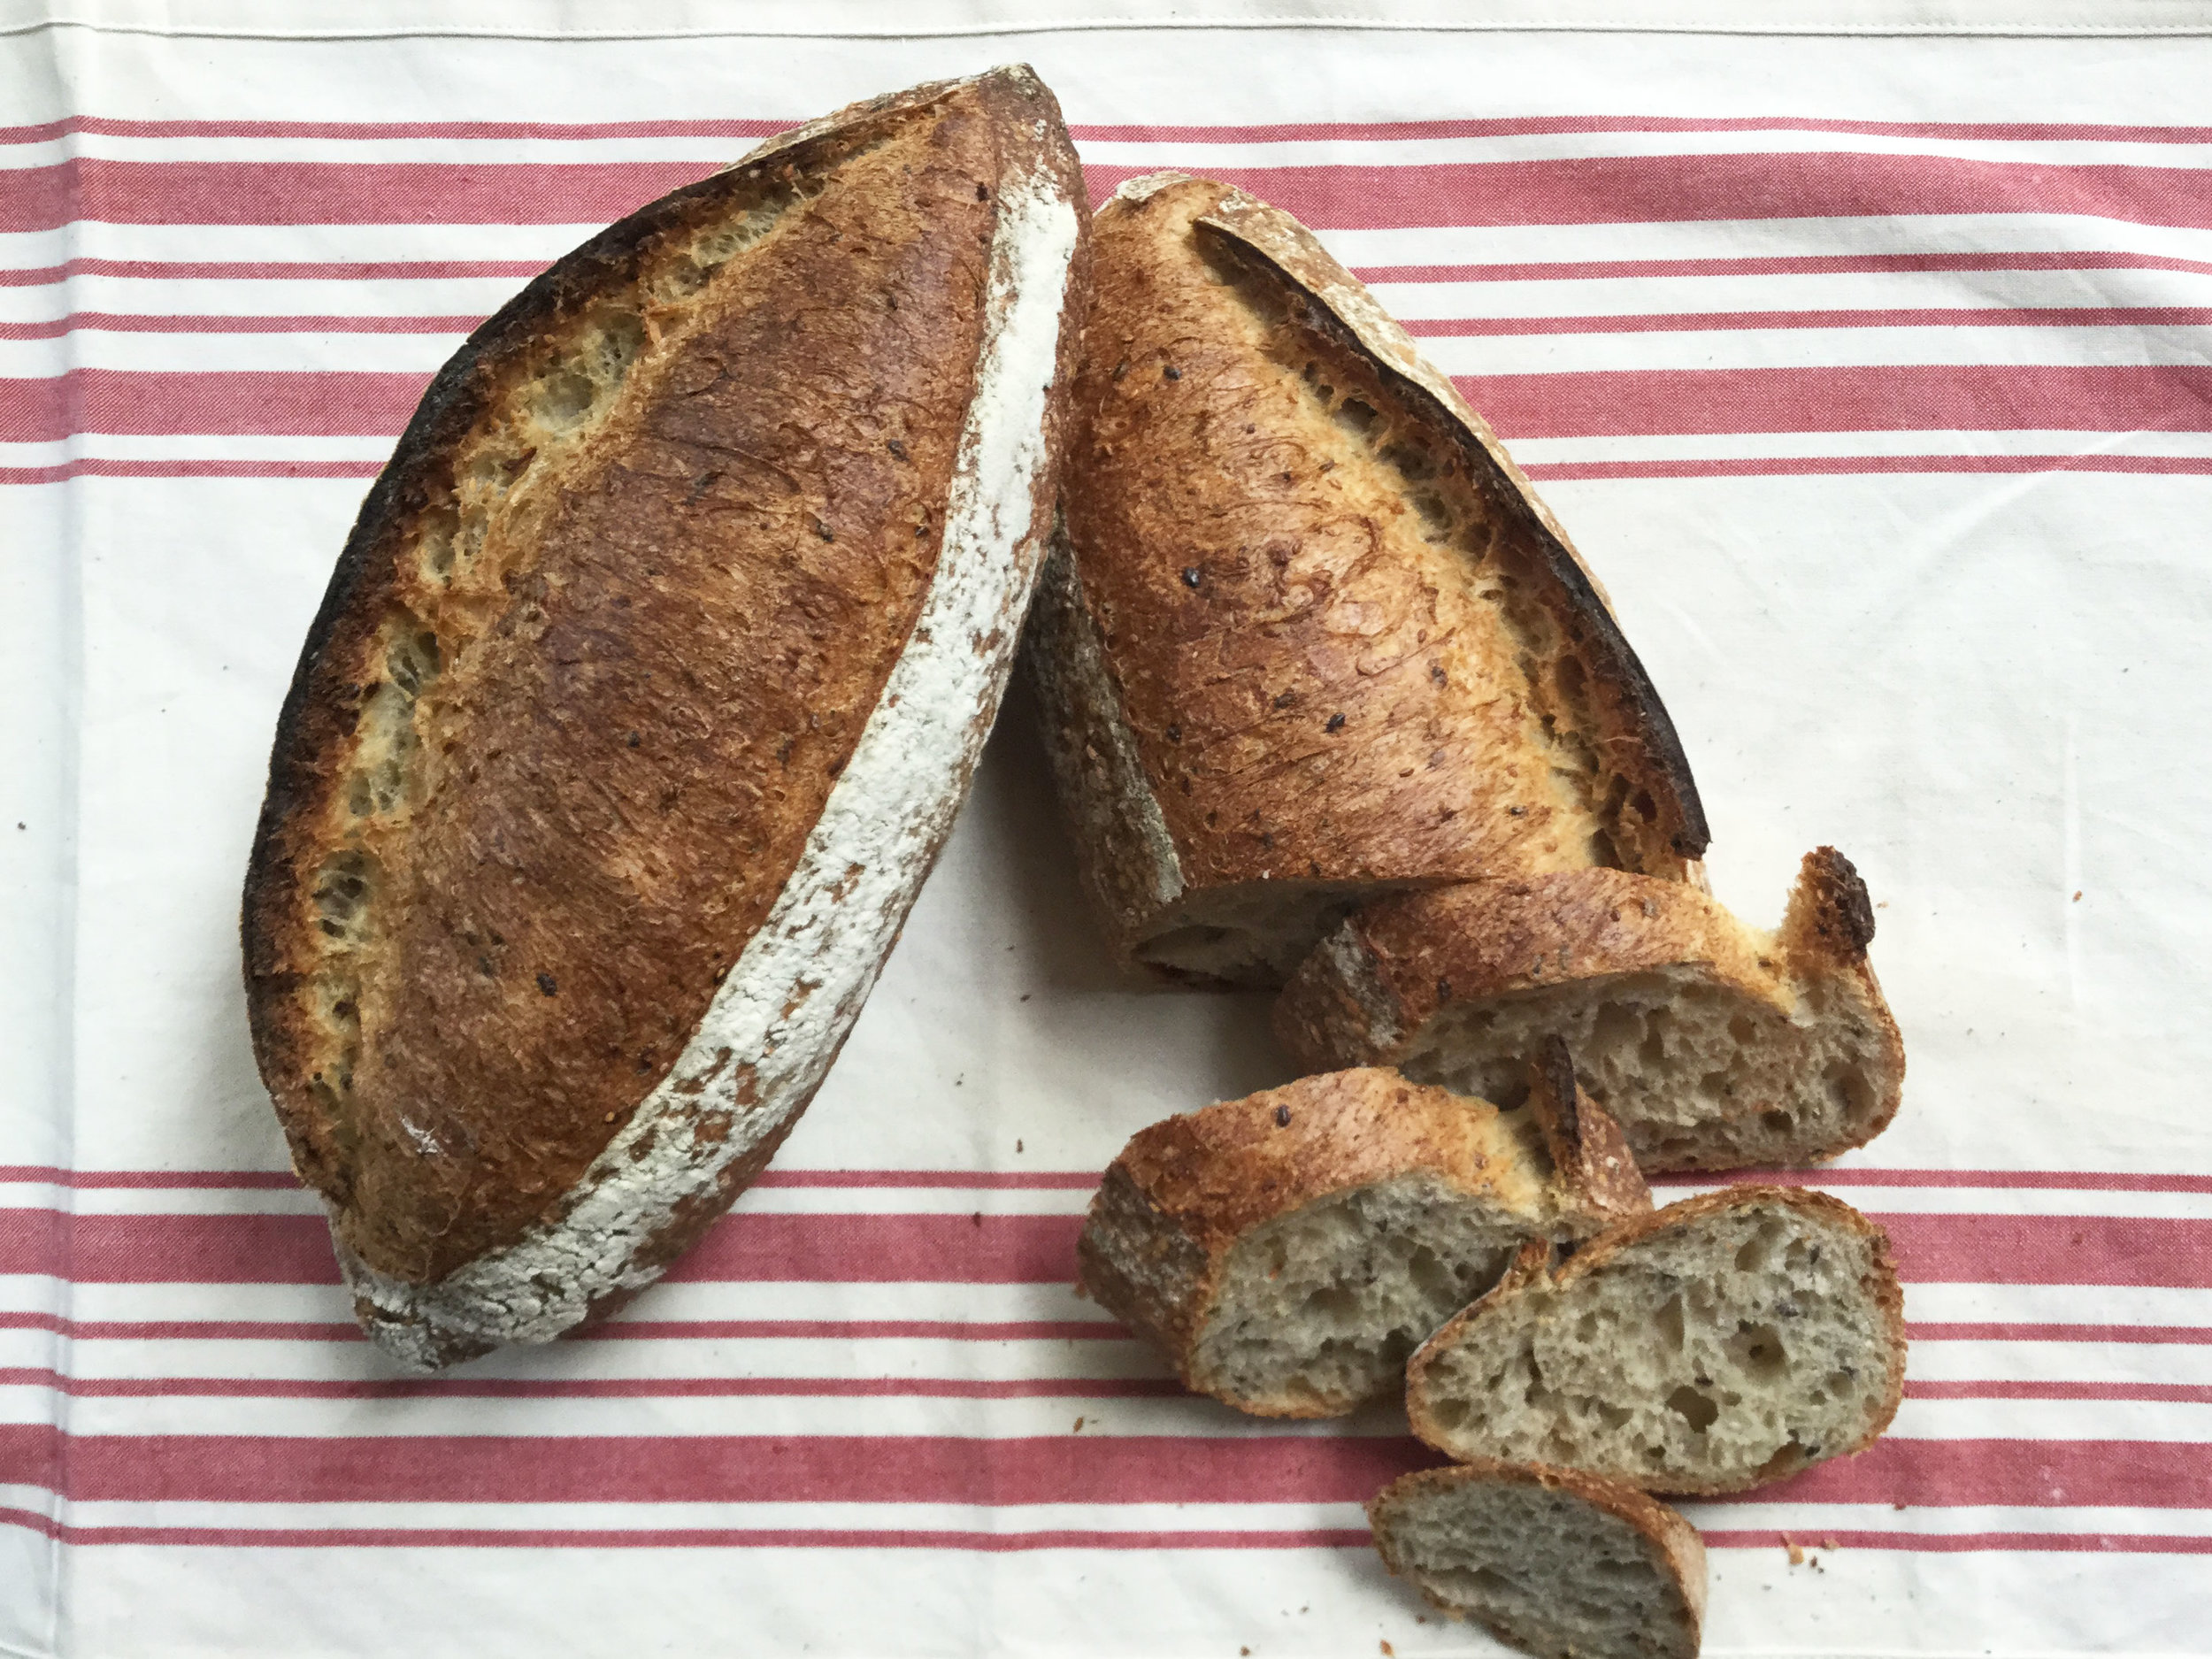 CEREAL   Mixed grains and seeds give this light, multi grain bread a marvelous, nutty flavor.   Ingredients: Unbleached white flour, sourdough starter, sesame seeds, flax seeds, oats, wheat germ, sea salt, water.